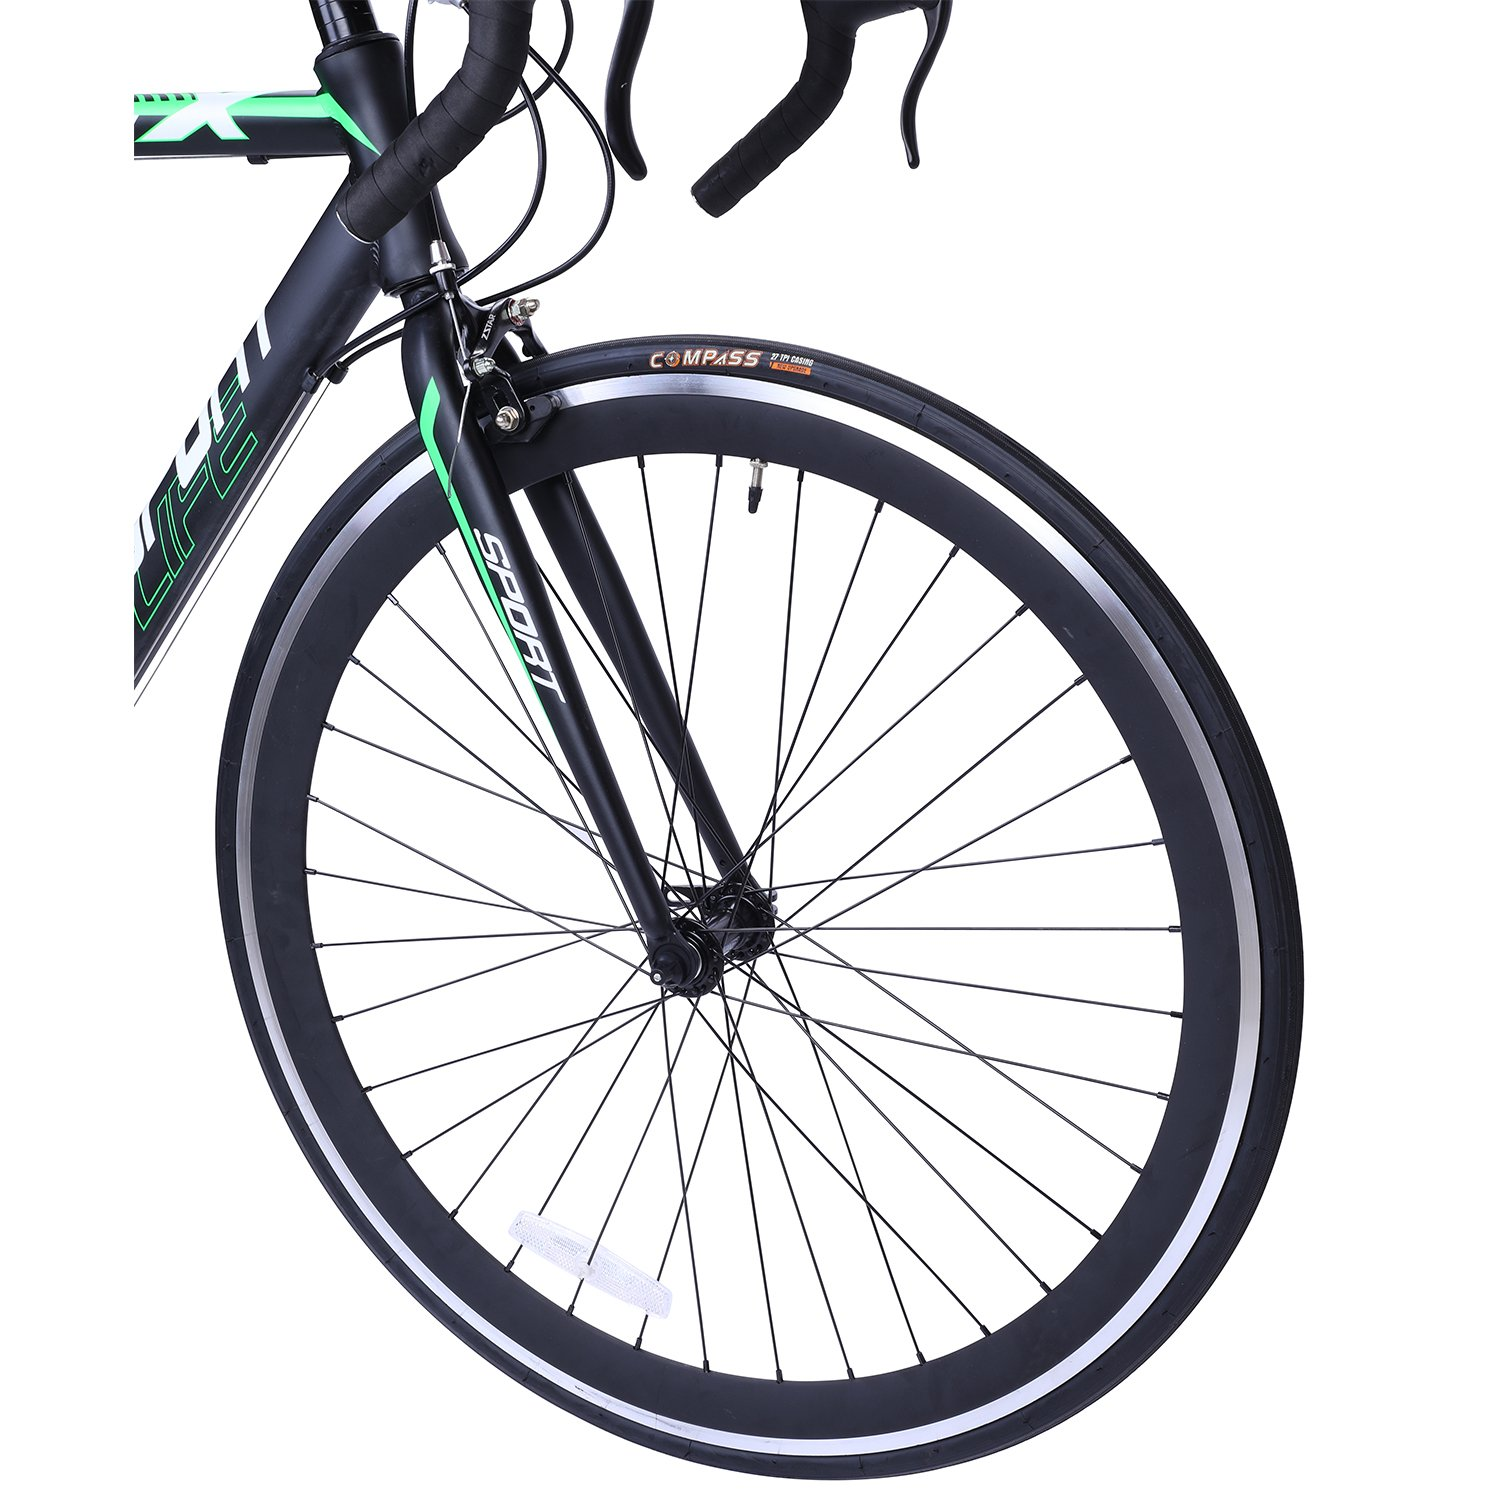 Road Bike Aluminum Commuter Bike Shimano 21 Speed 700c x 25c Racing Bicyle Sport Life Black 58cm by Gr8 Sport + Life (Image #4)